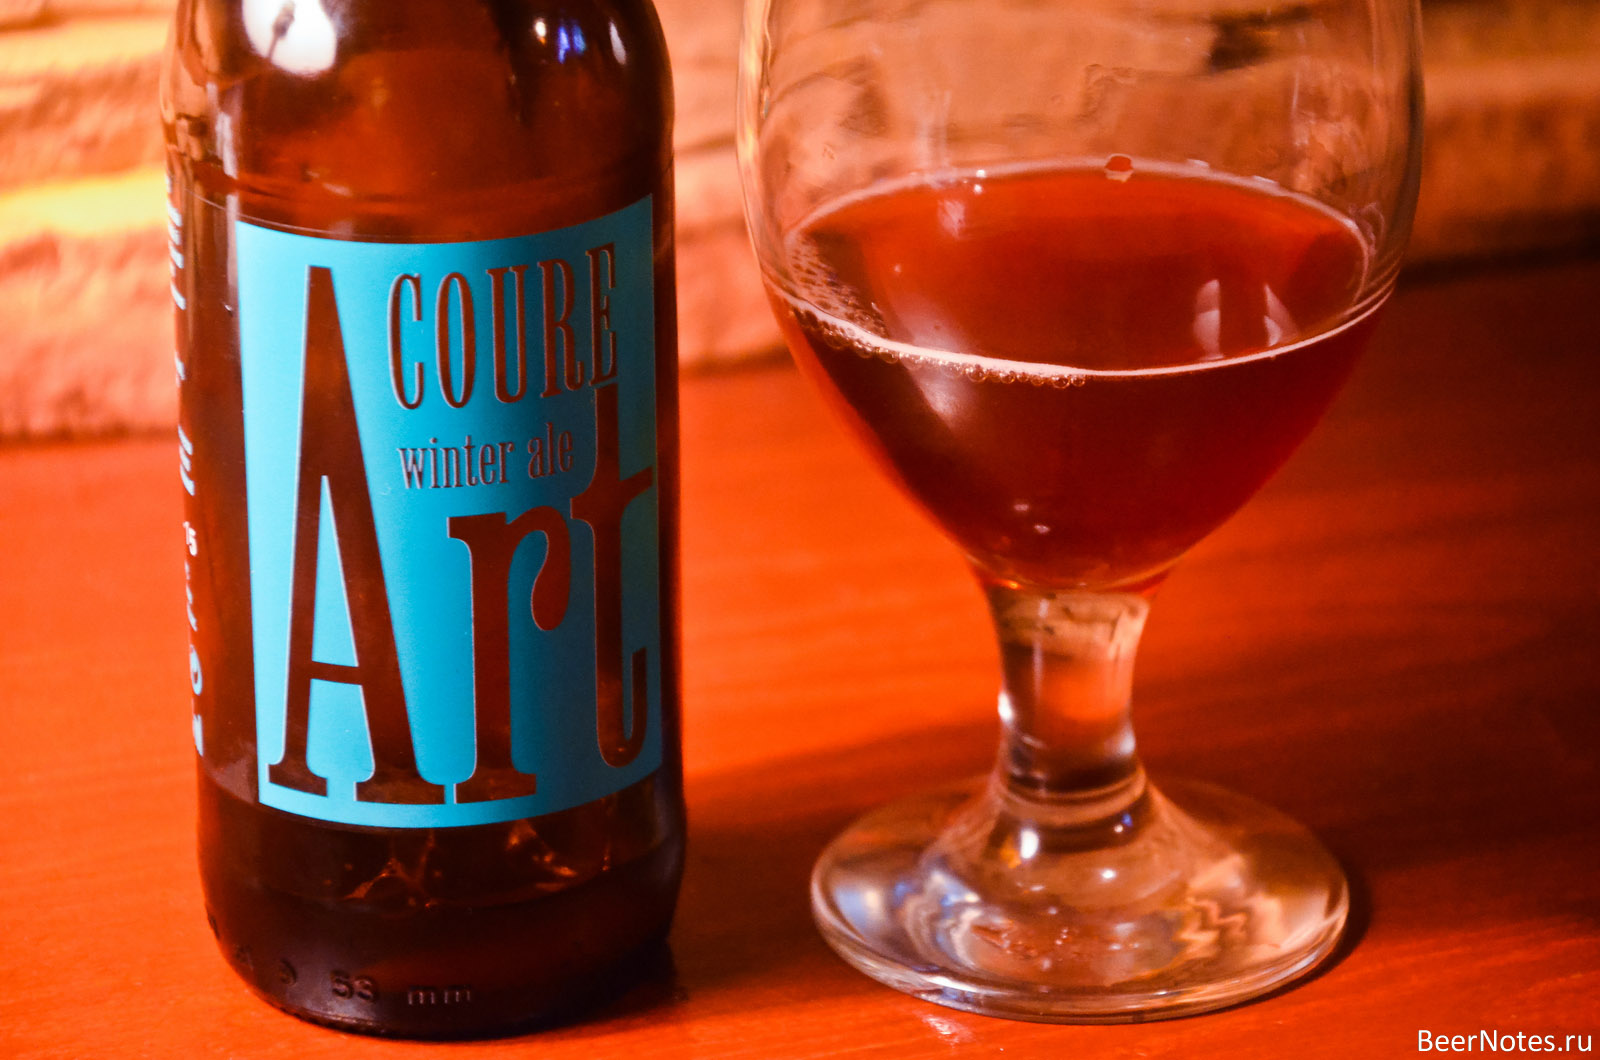 Art Coure Winter Ale